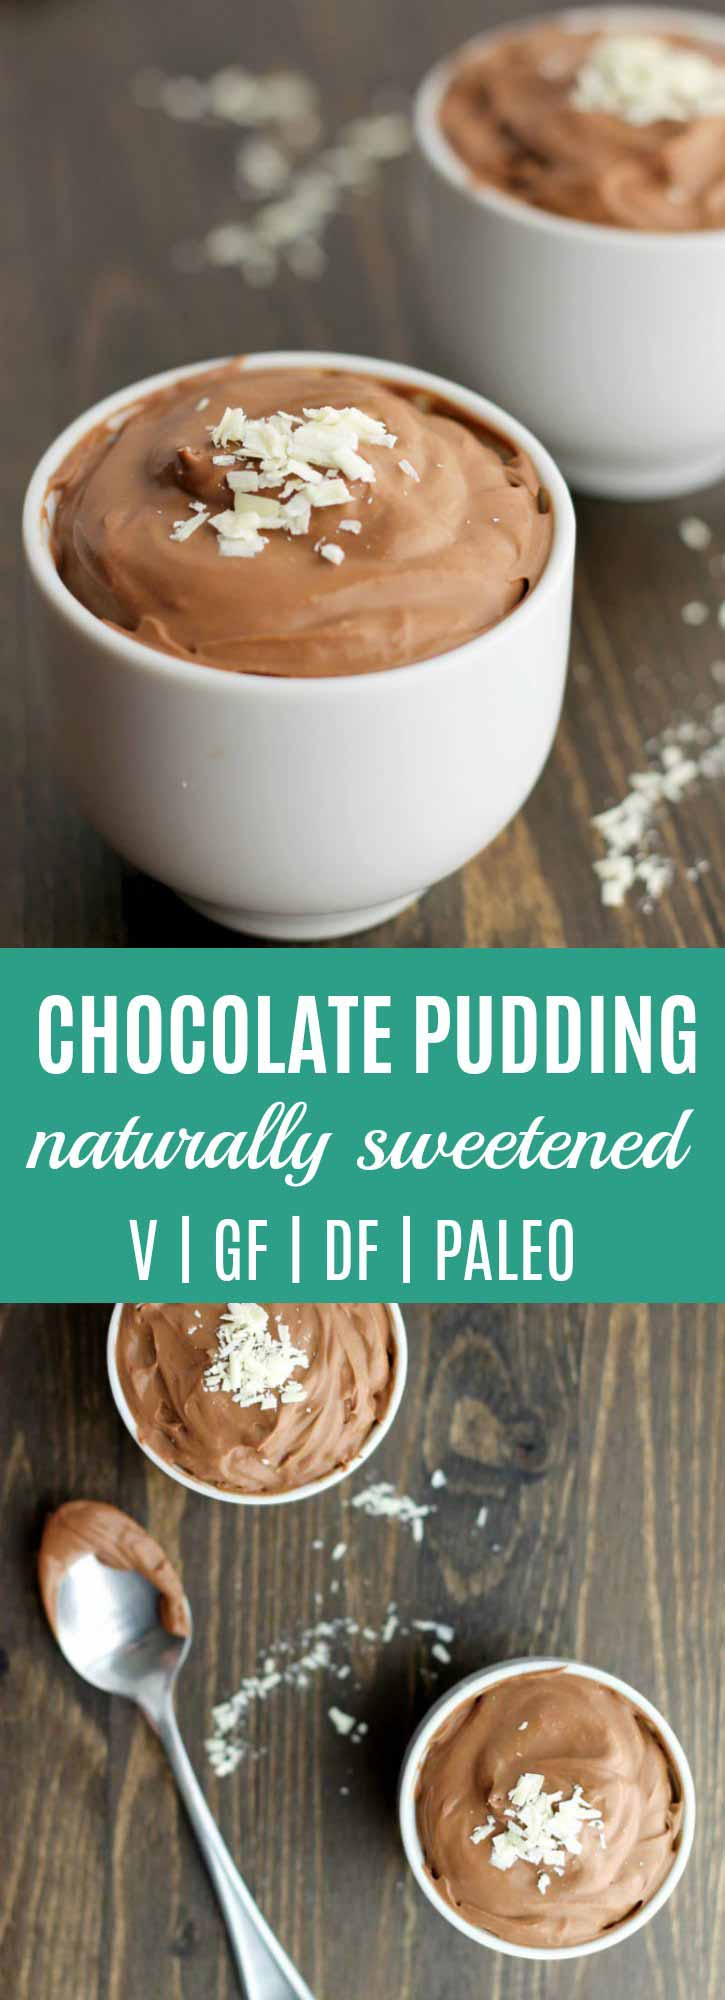 Chocolate Pudding Recipe Smitten Kitchen